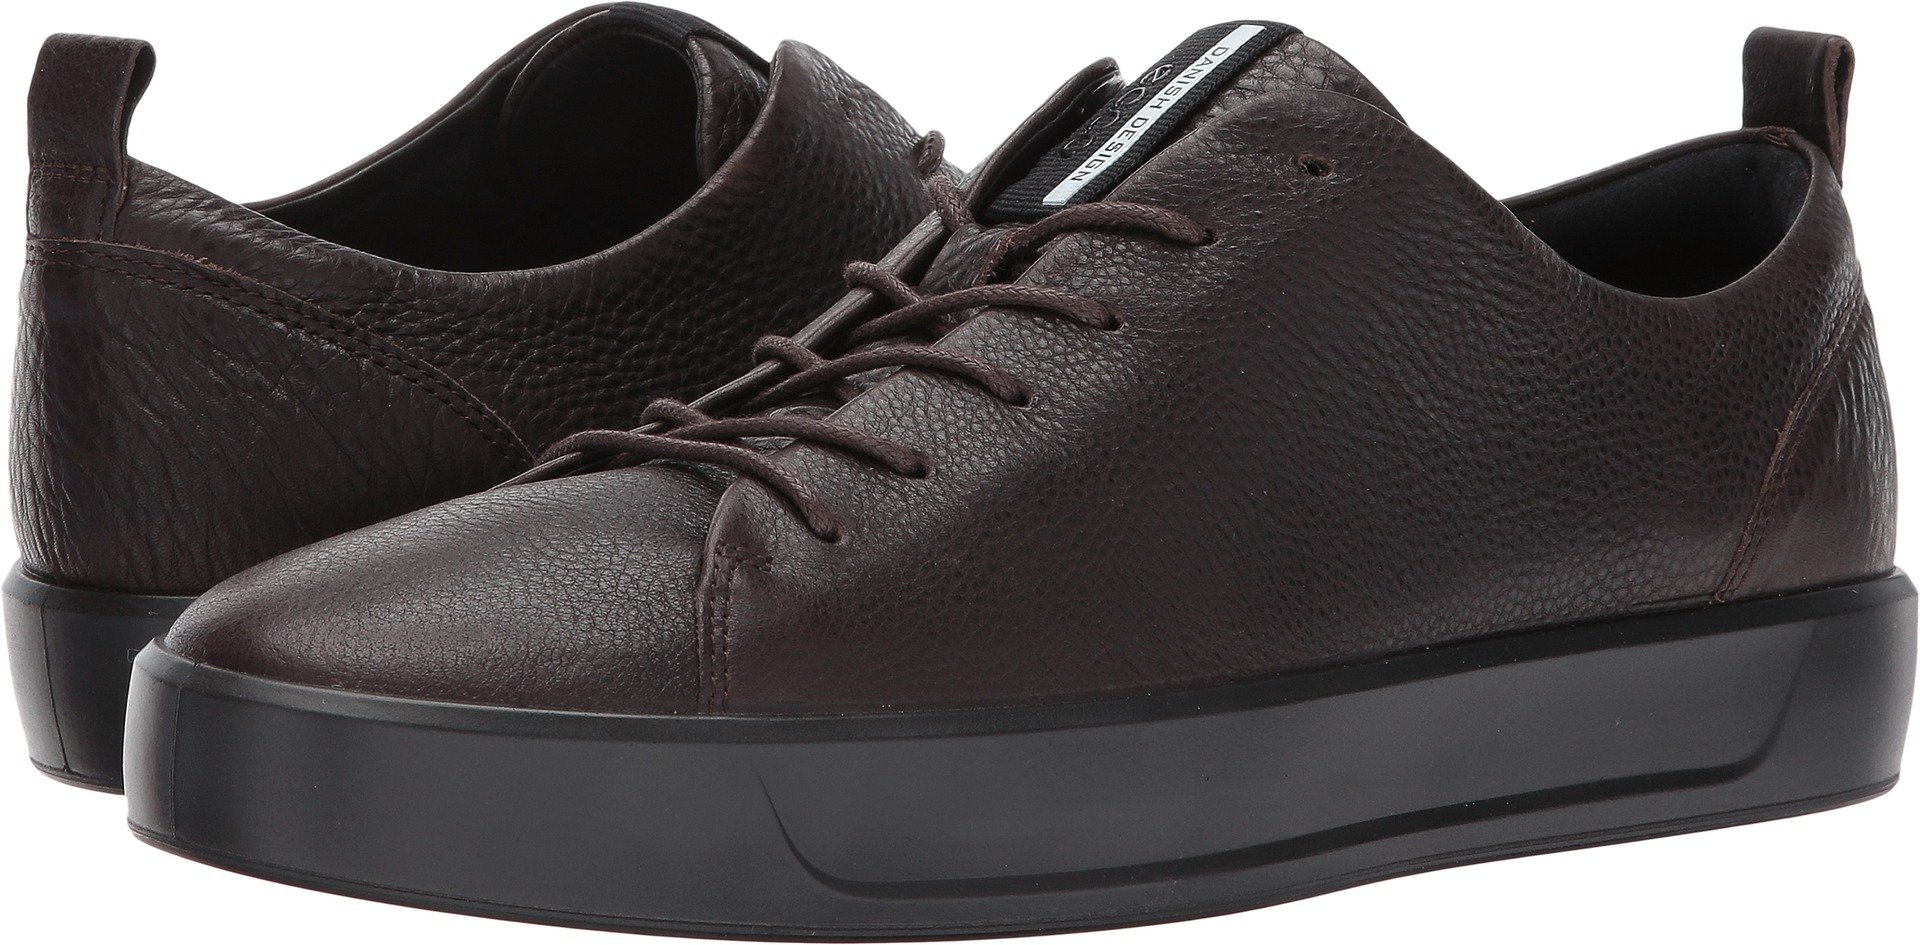 ECCO Men's Soft 8 Tie Fashion Sneaker, Coffee/Black, 46 EU/12.5 M US